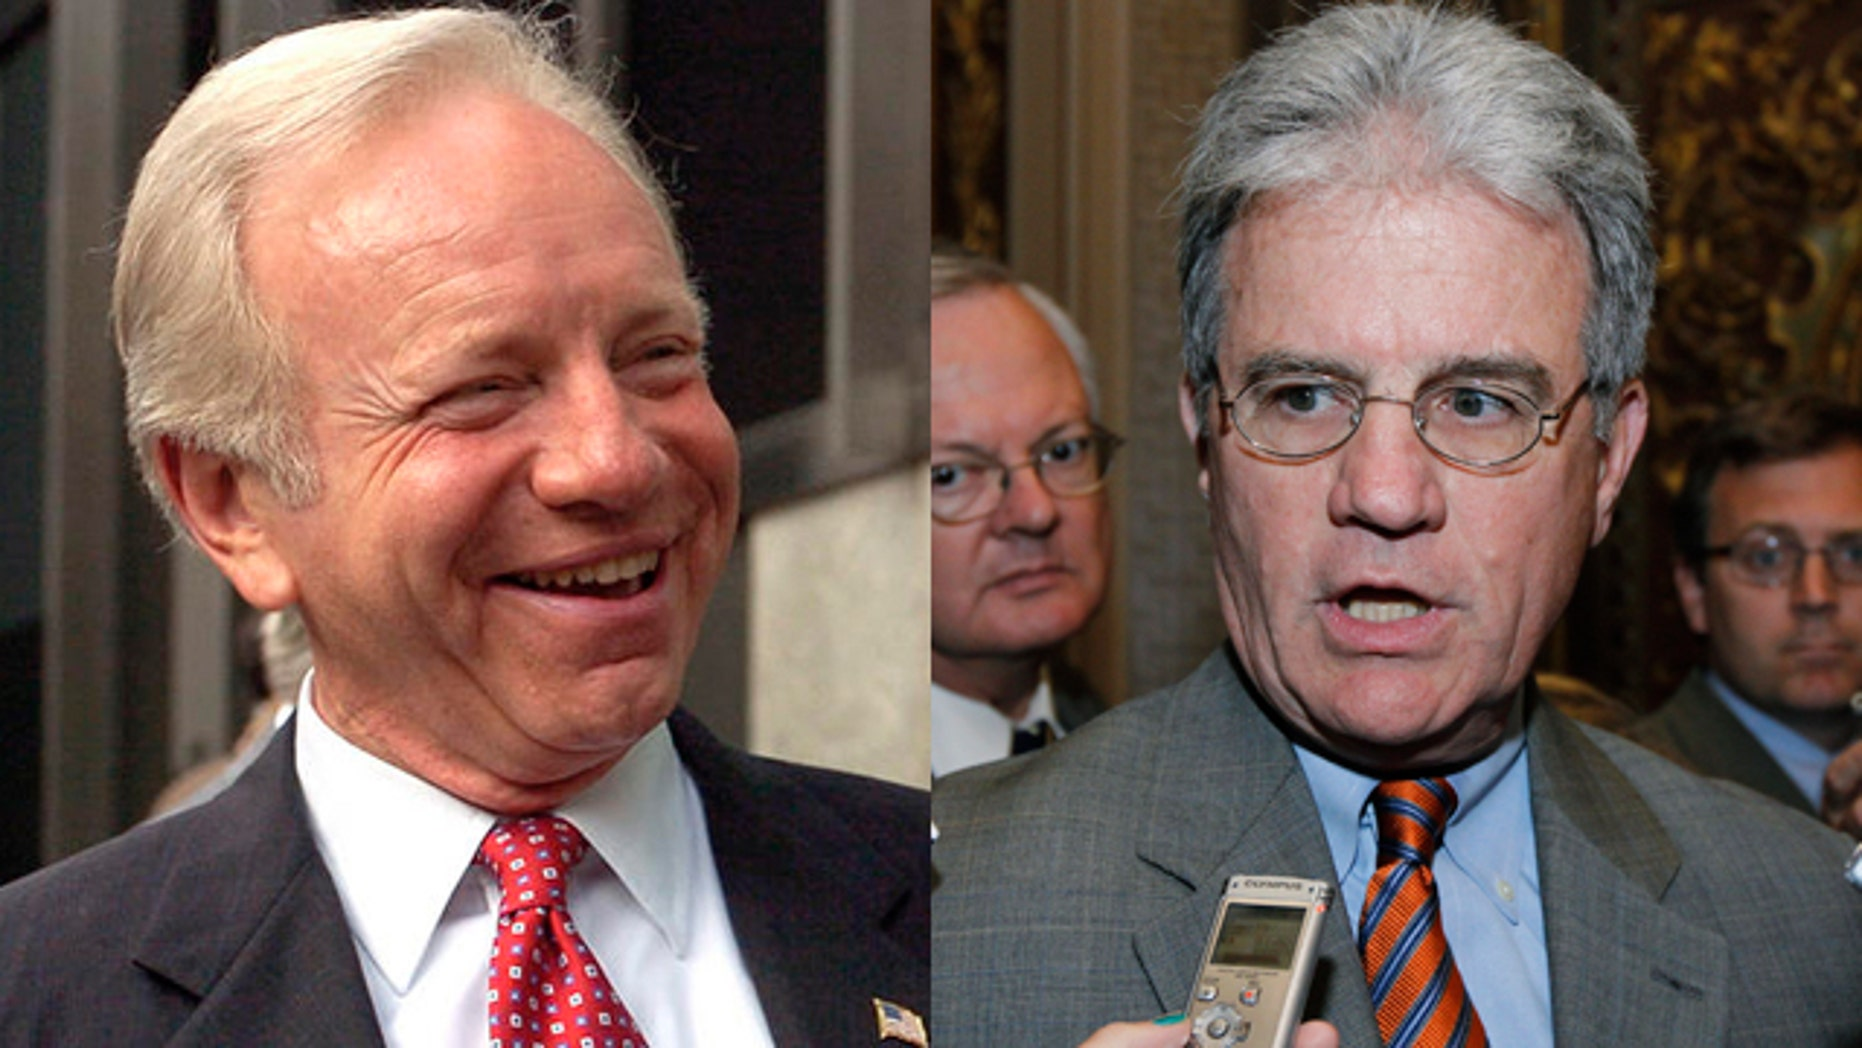 Sens. Joe Lieberman, D-Conn., left, and Tom Coburn, R-Okla.